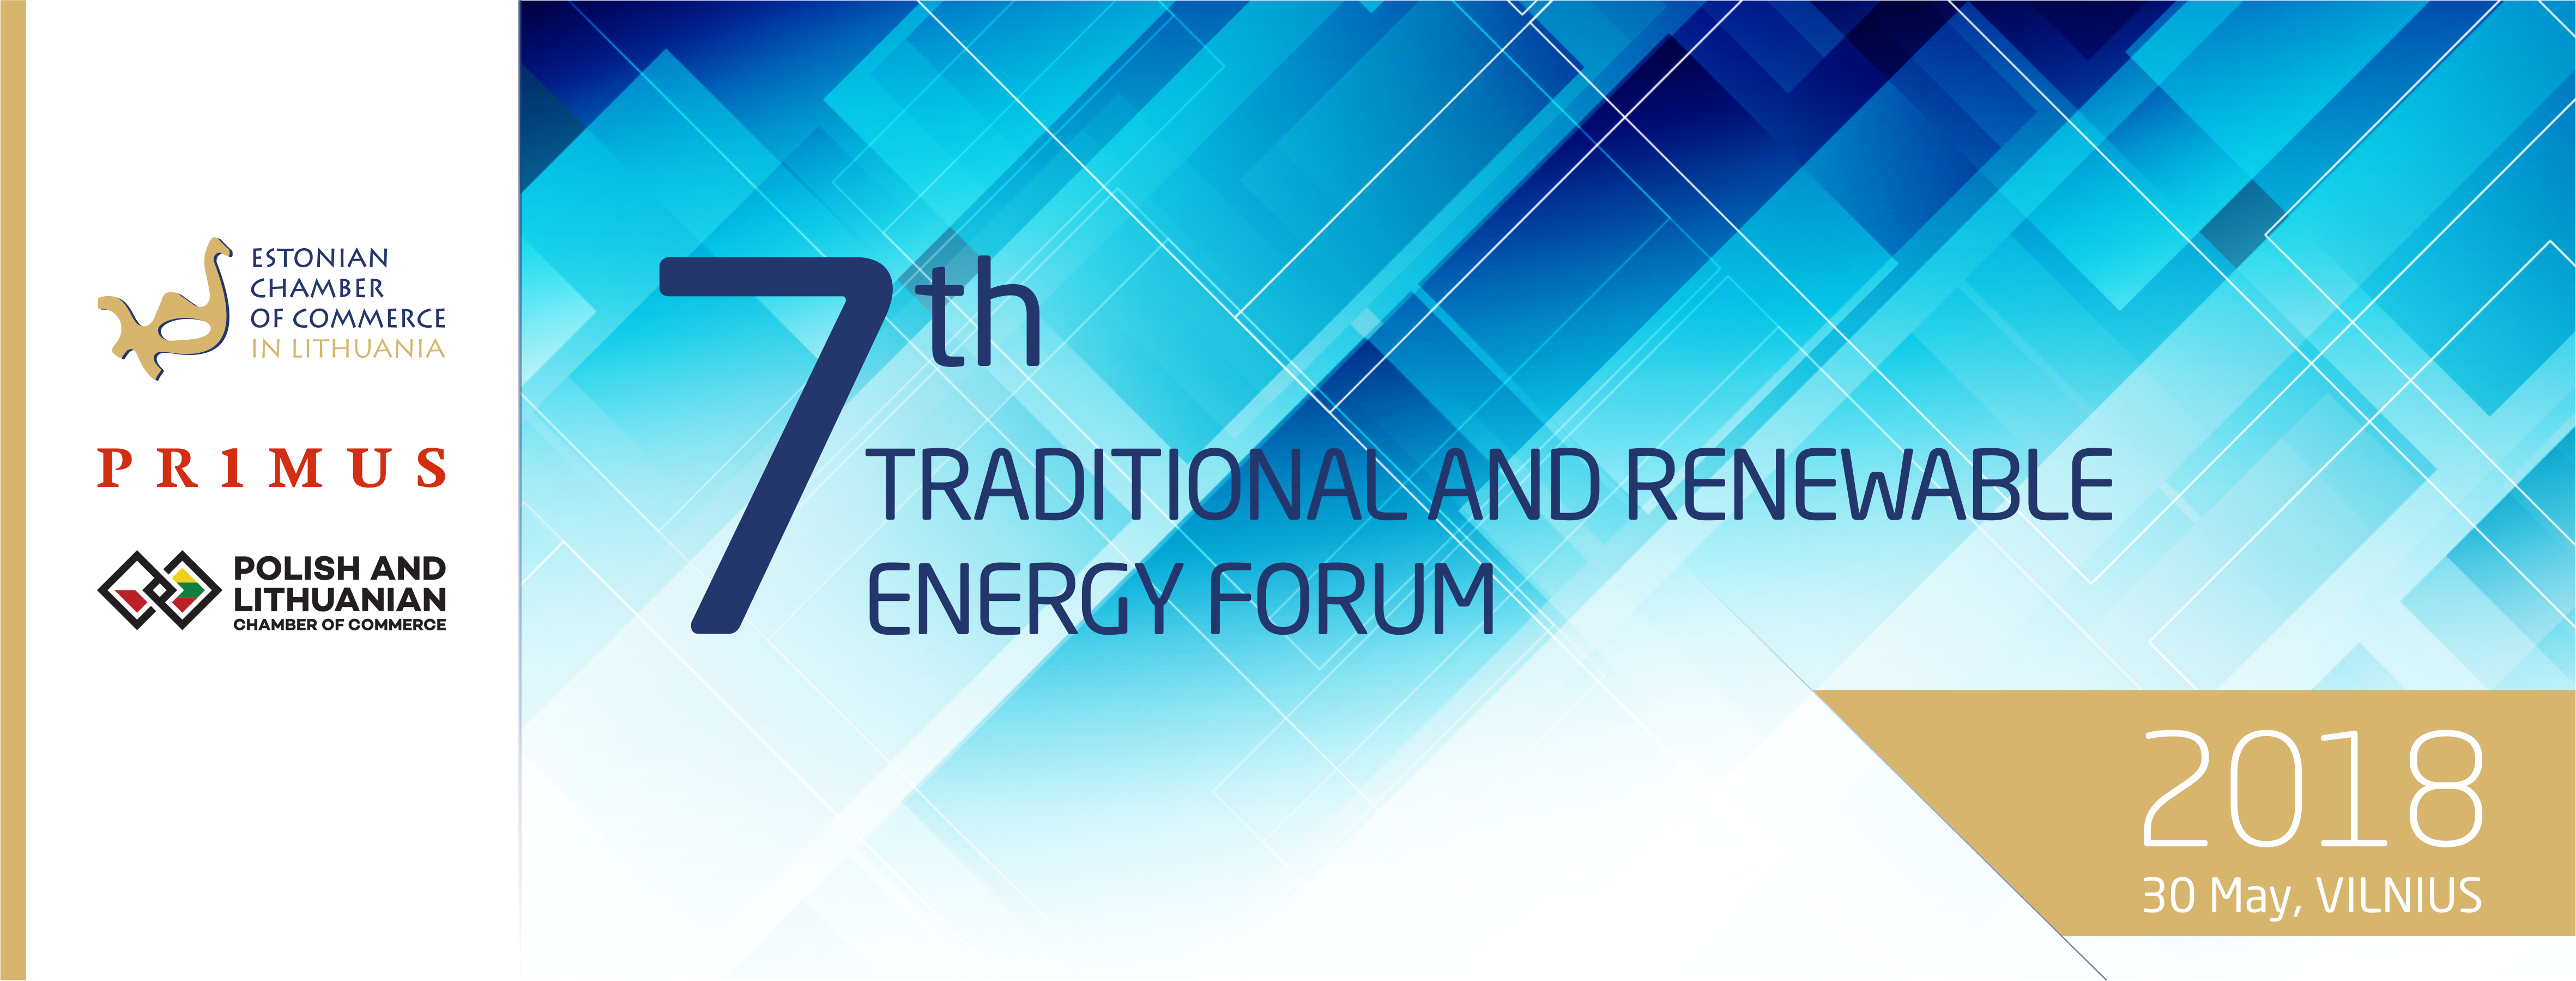 SAVE THE DATE - 7th Traditional and Renewable Energy Forum 2018